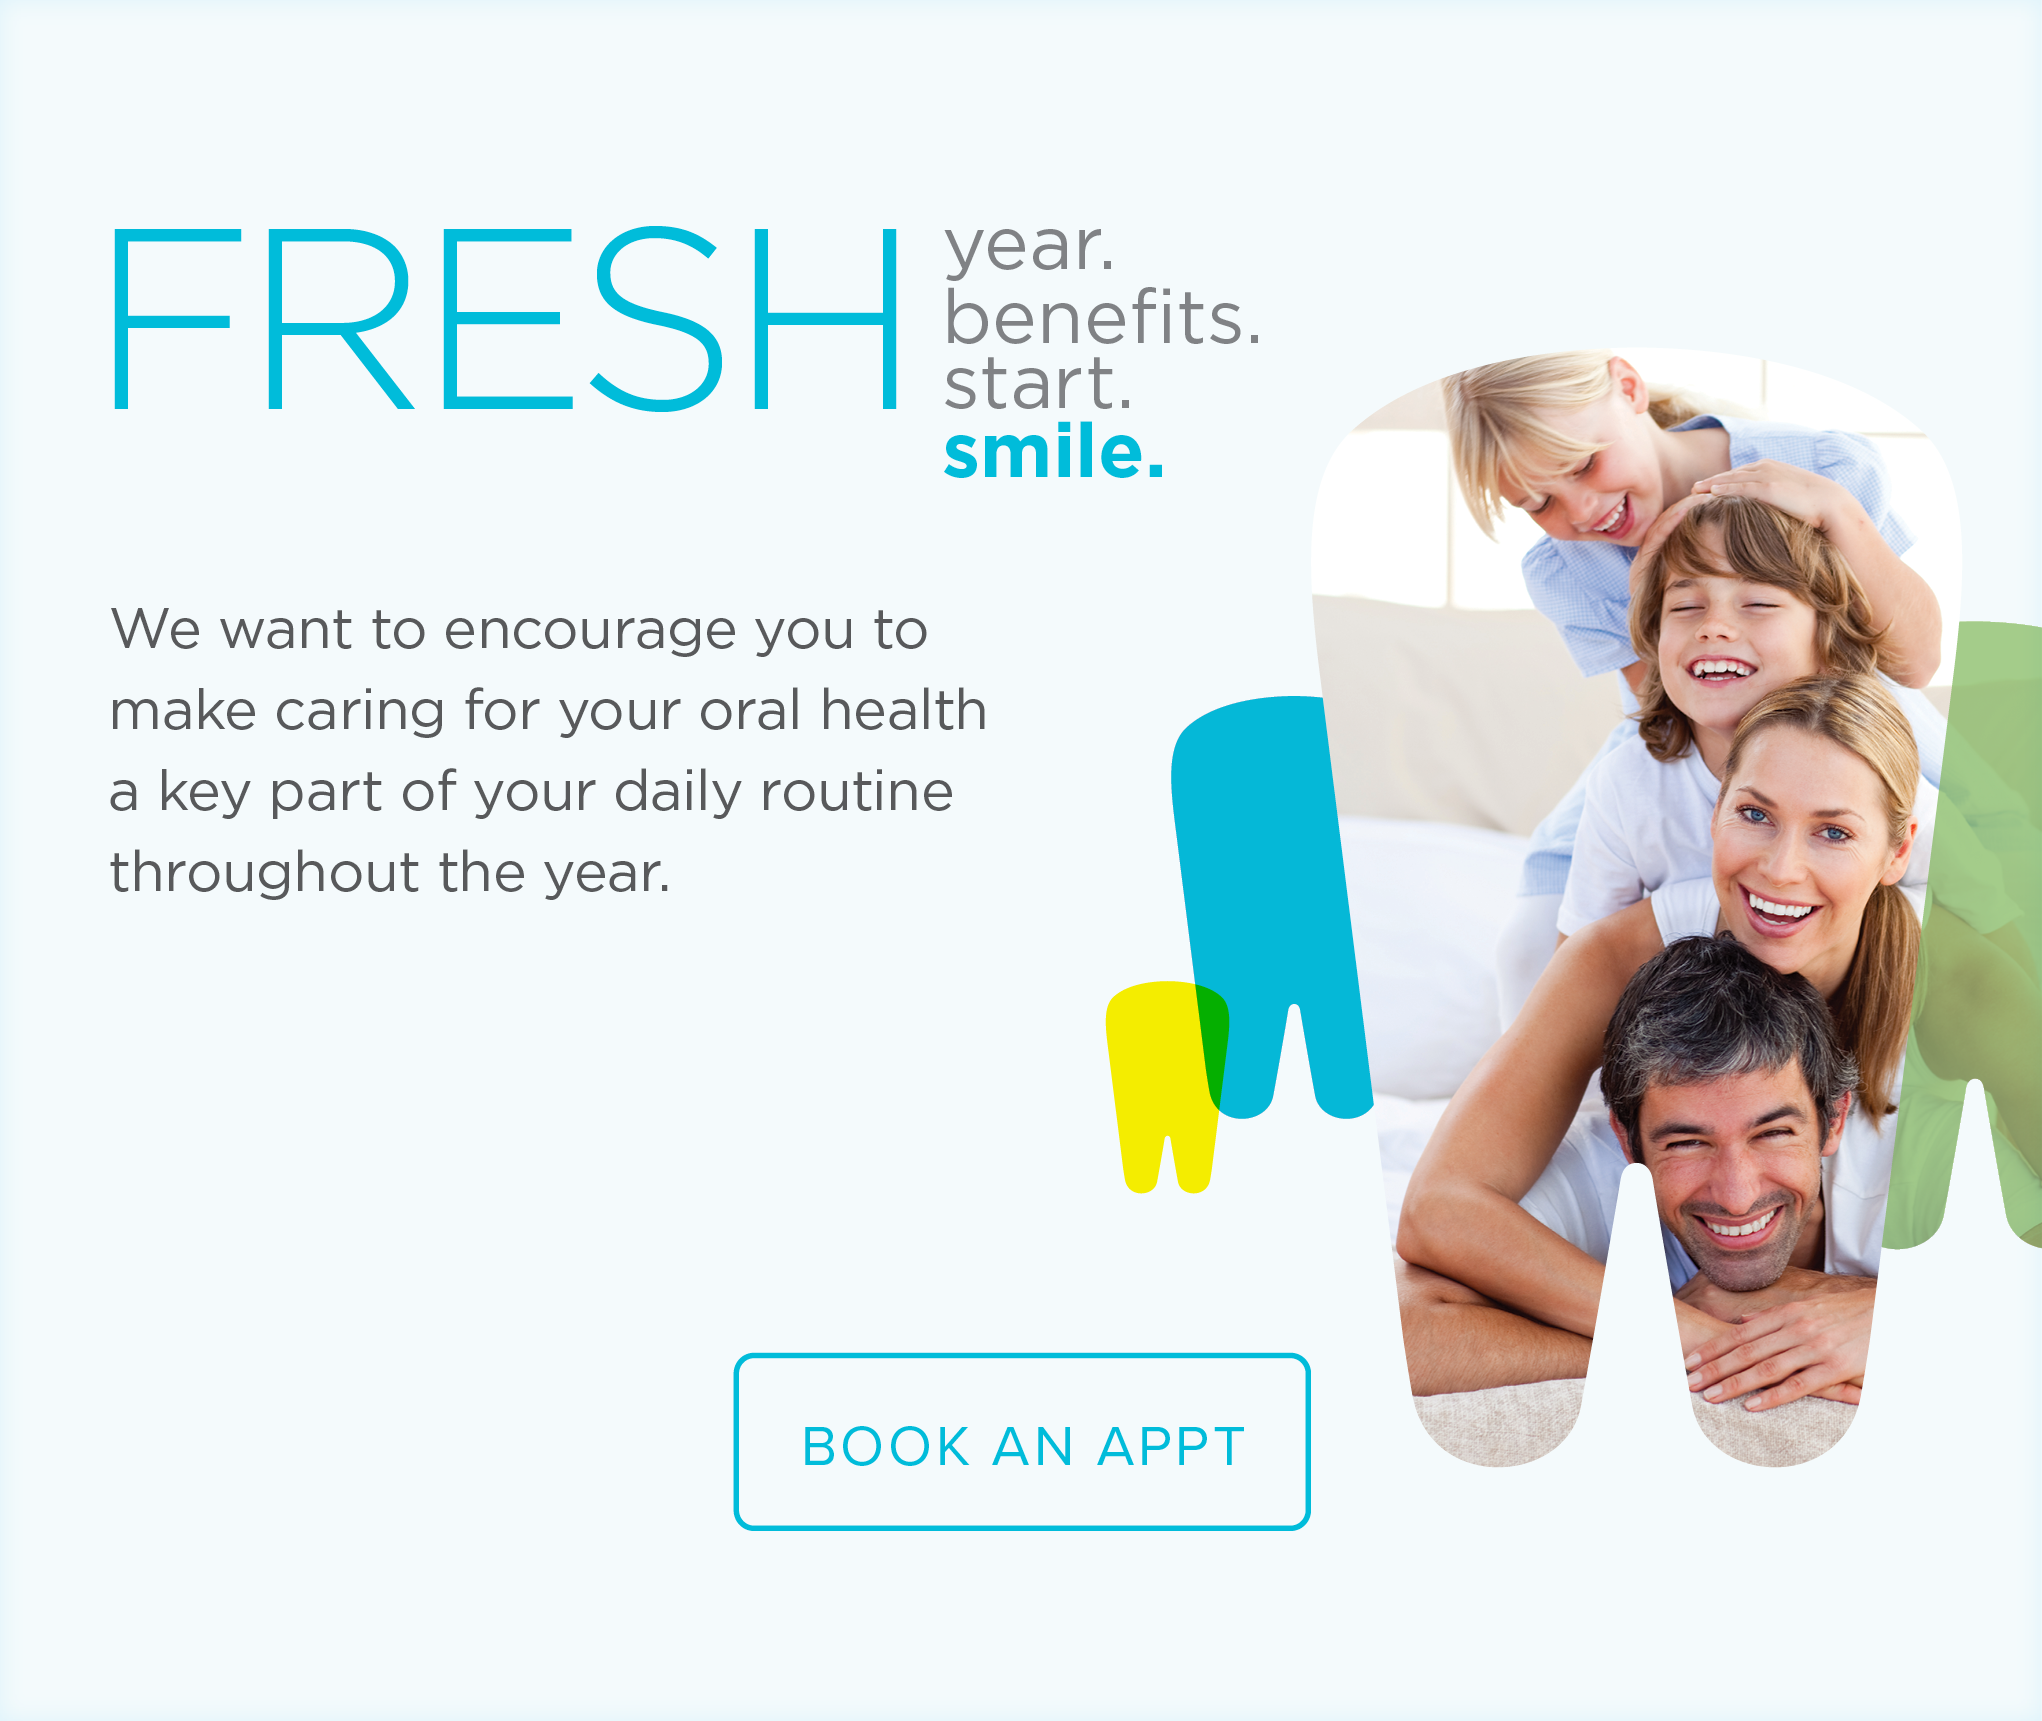 Queen Creek Smiles Dentistry and Orthodontics - Make the Most of Your Benefits